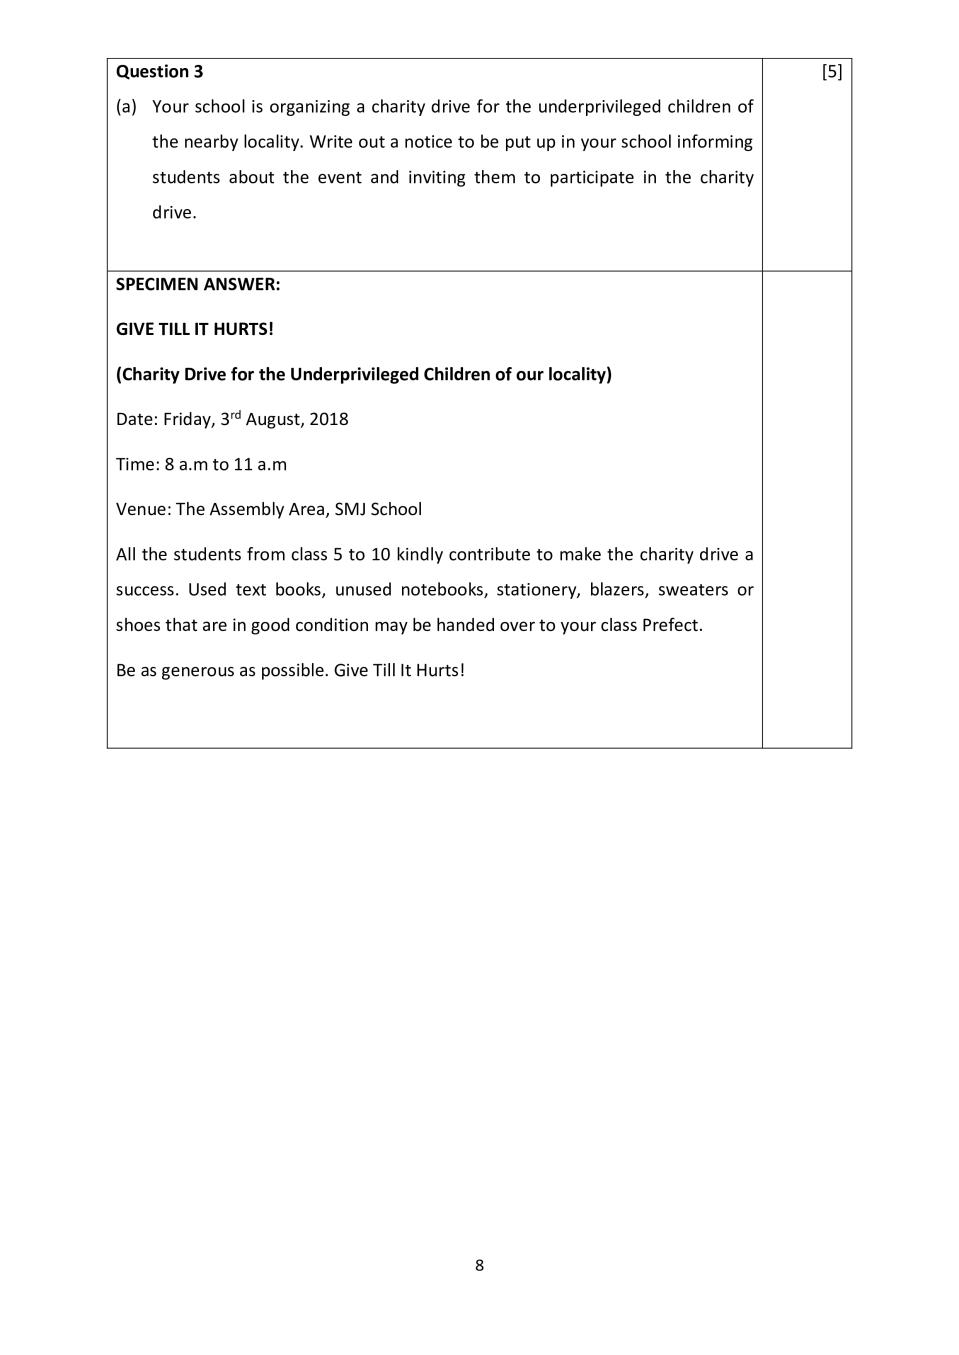 Icse Class 10 E-Mail And Notice Writing Sample Paper 2020